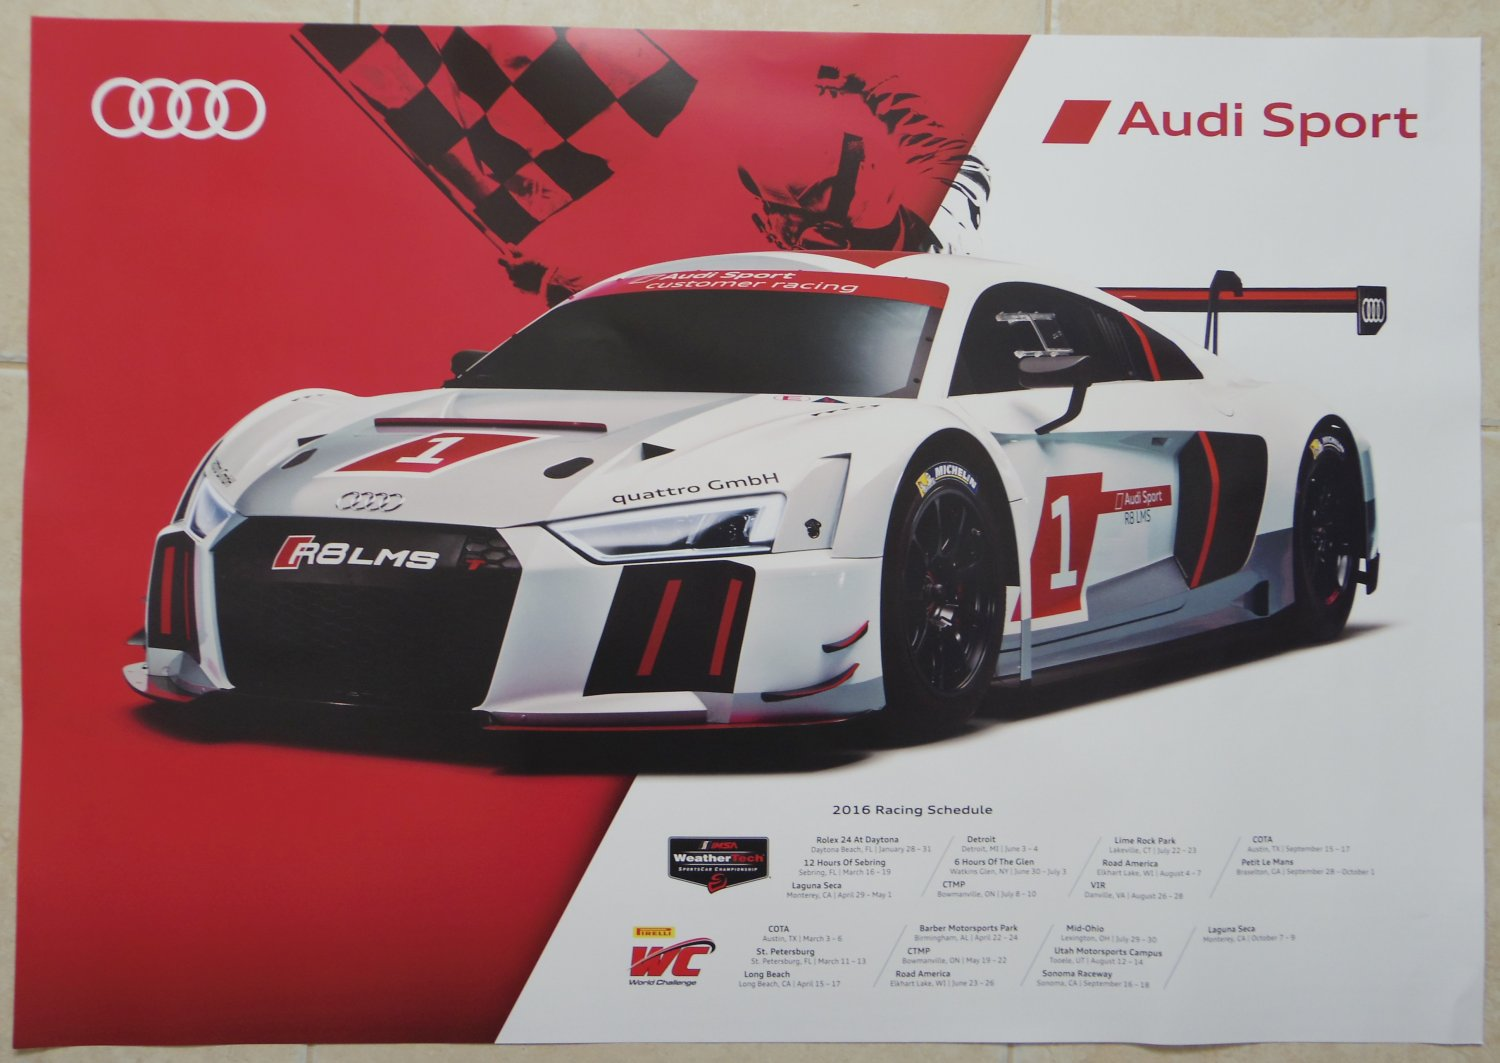 2016 audi sport r8 gtlm poster audi racing wec le mans audi poster. Black Bedroom Furniture Sets. Home Design Ideas